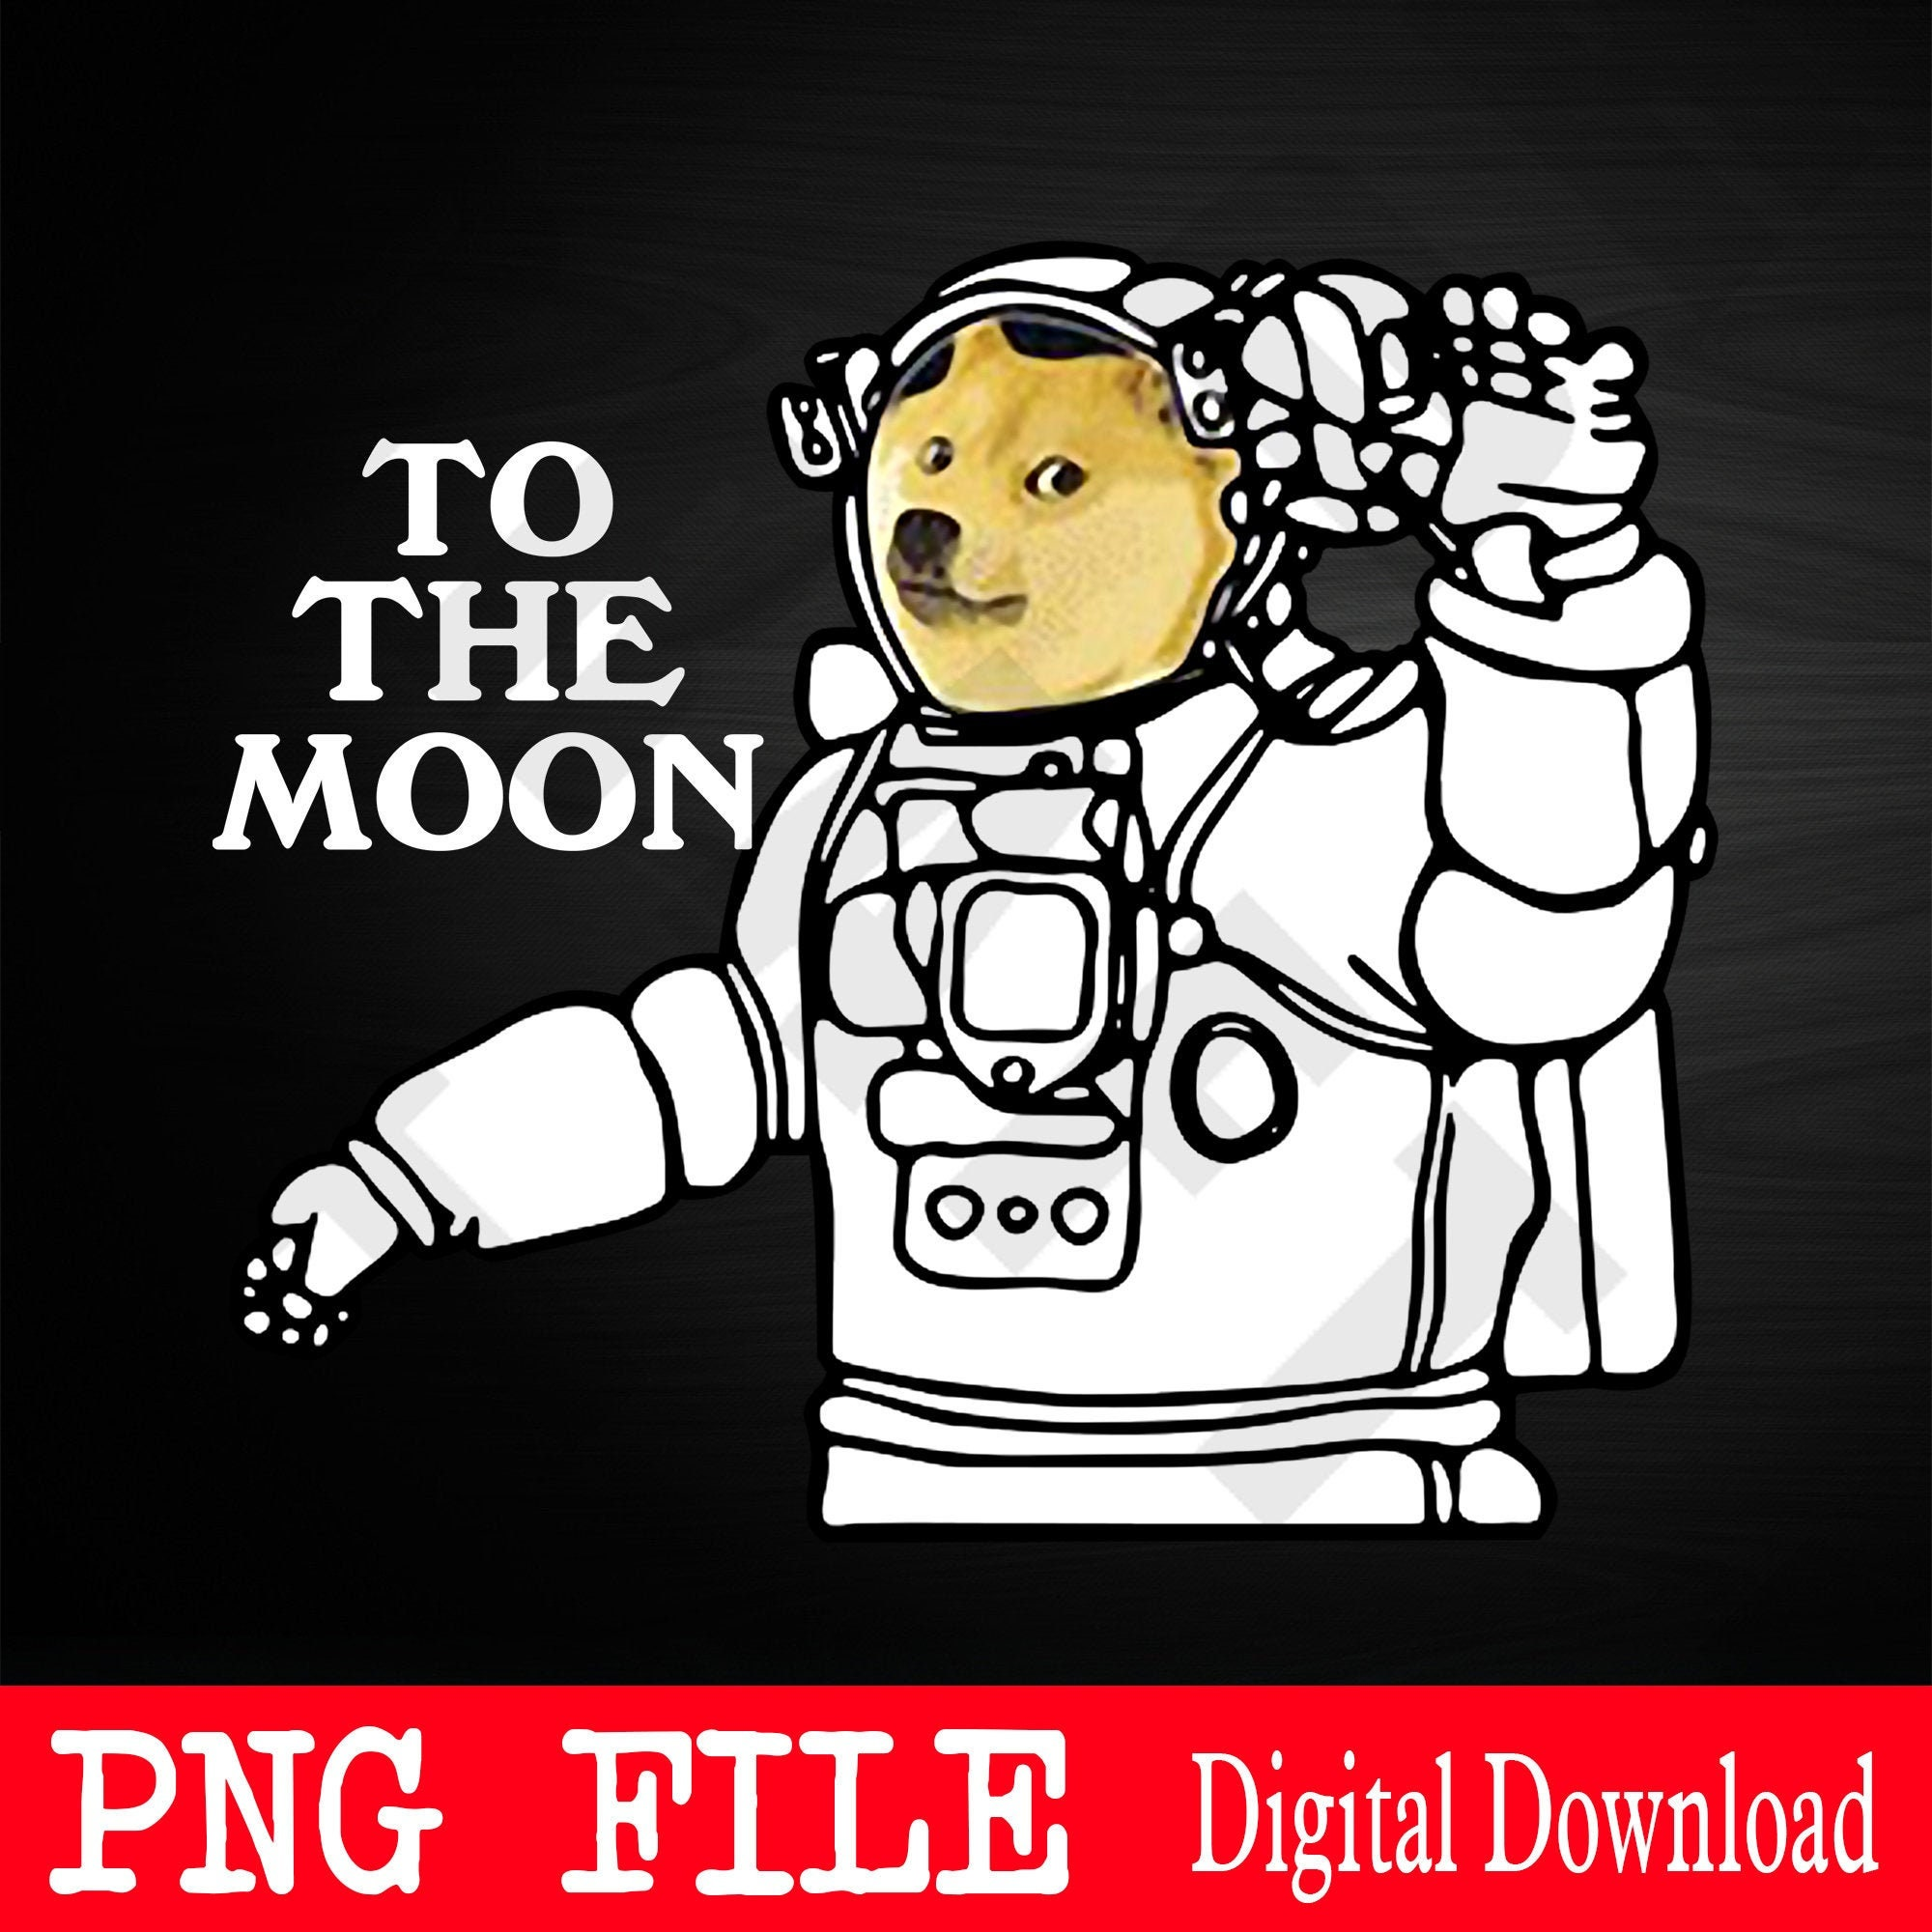 Dogecoin To The Moon Cool 2021 Png Dogecoin Png Dogecoin ...